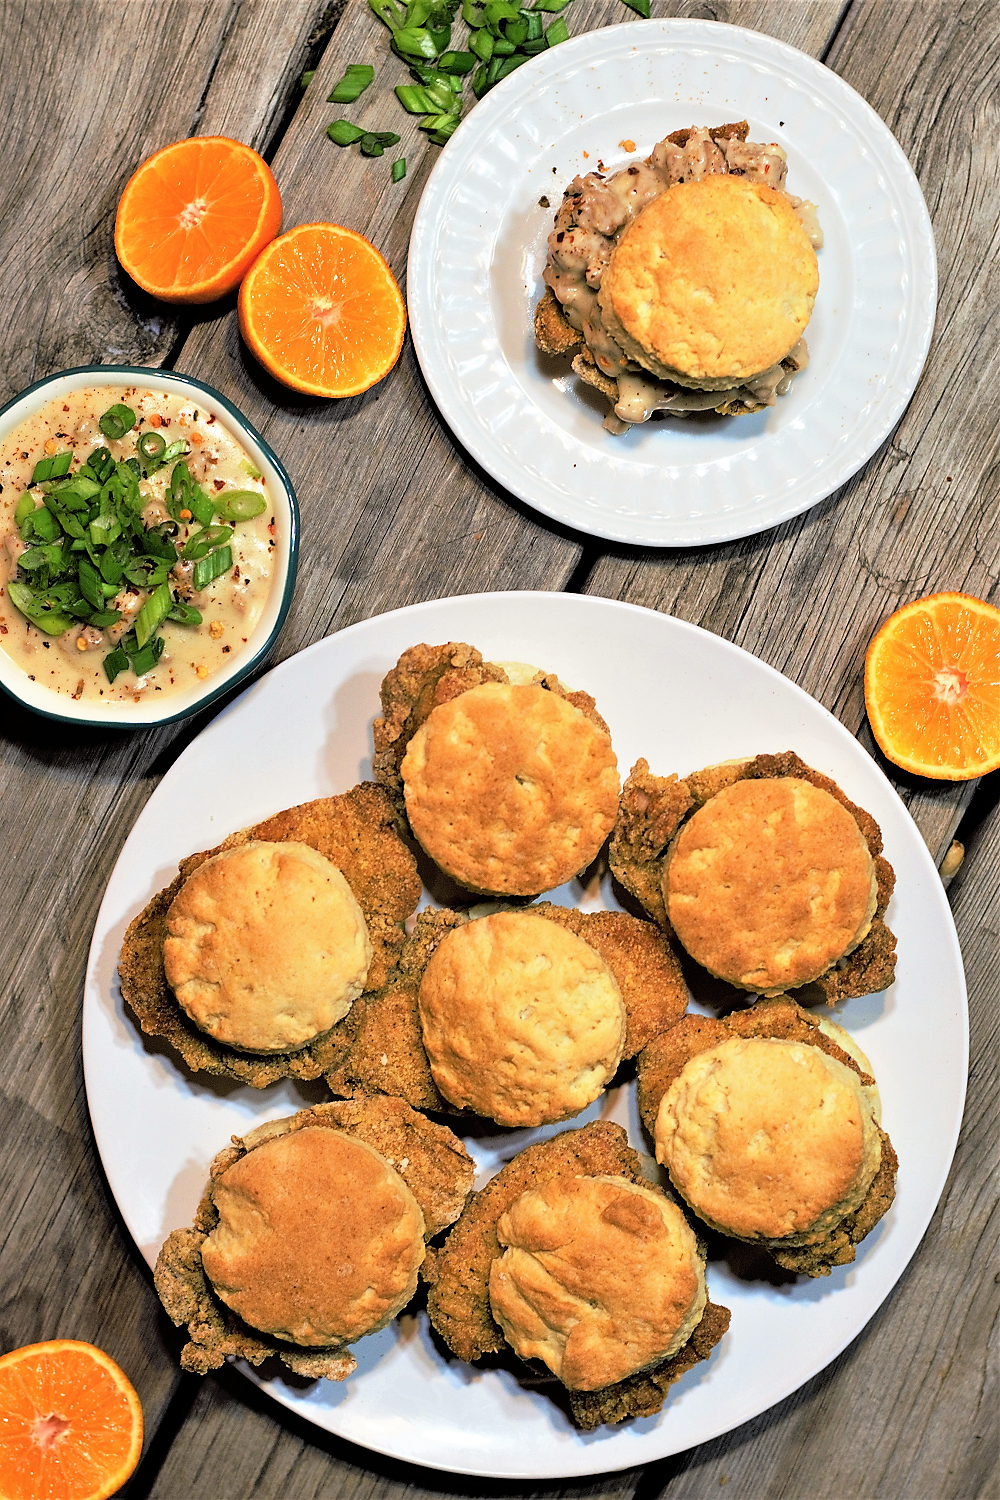 Step up your brunch game this weekend: juicy oven-fried chicken on flaky biscuits drowned in sausage gravy are the ultimate stuff-your-face comfort (or hangover) food!